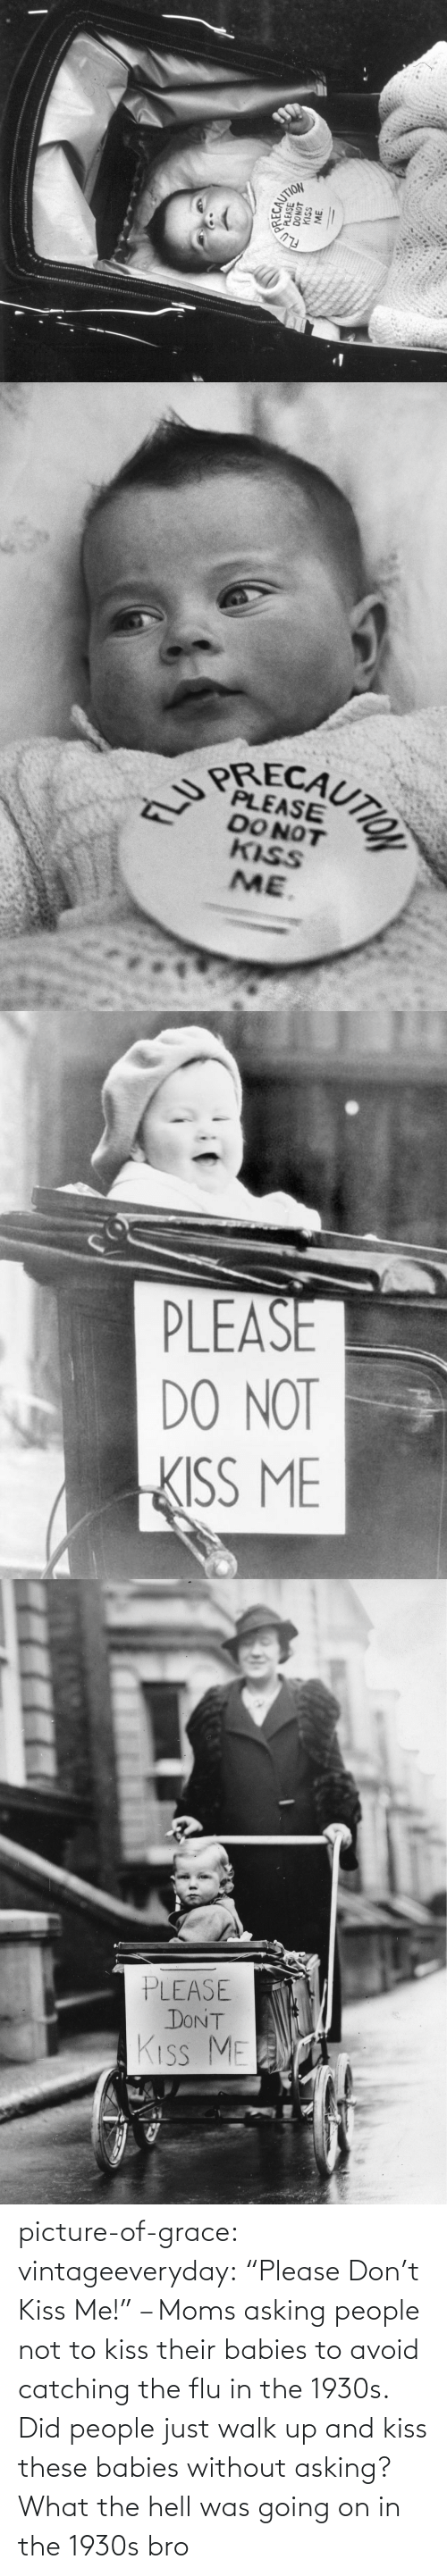 "what: picture-of-grace:  vintageeveryday: ""Please Don't Kiss Me!"" – Moms asking people not to kiss their babies to avoid catching the flu in the 1930s.   Did people just walk up and kiss these babies without asking? What the hell was going on in the 1930s bro"